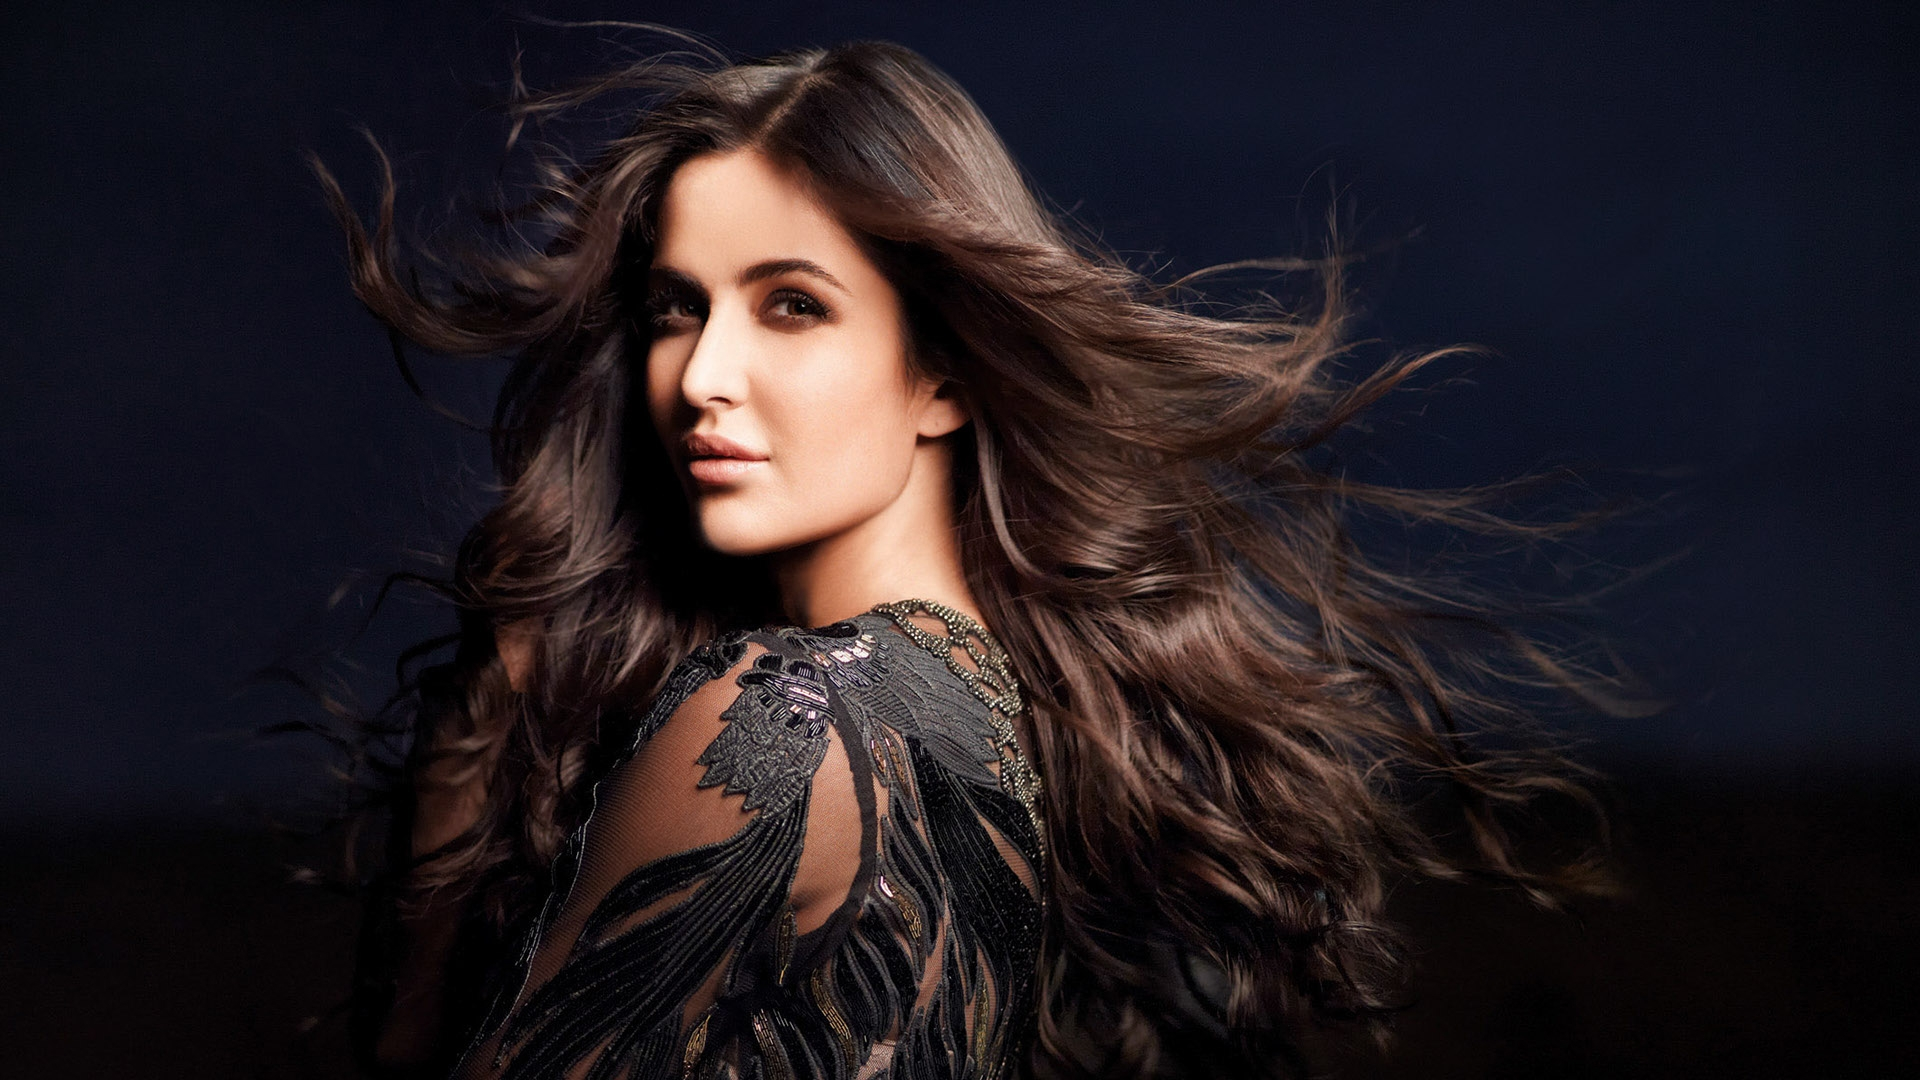 Photo of Katrina Kaif Finds Her Duplicate On Social Media And The Pics Are Going Viral Like Wildfire